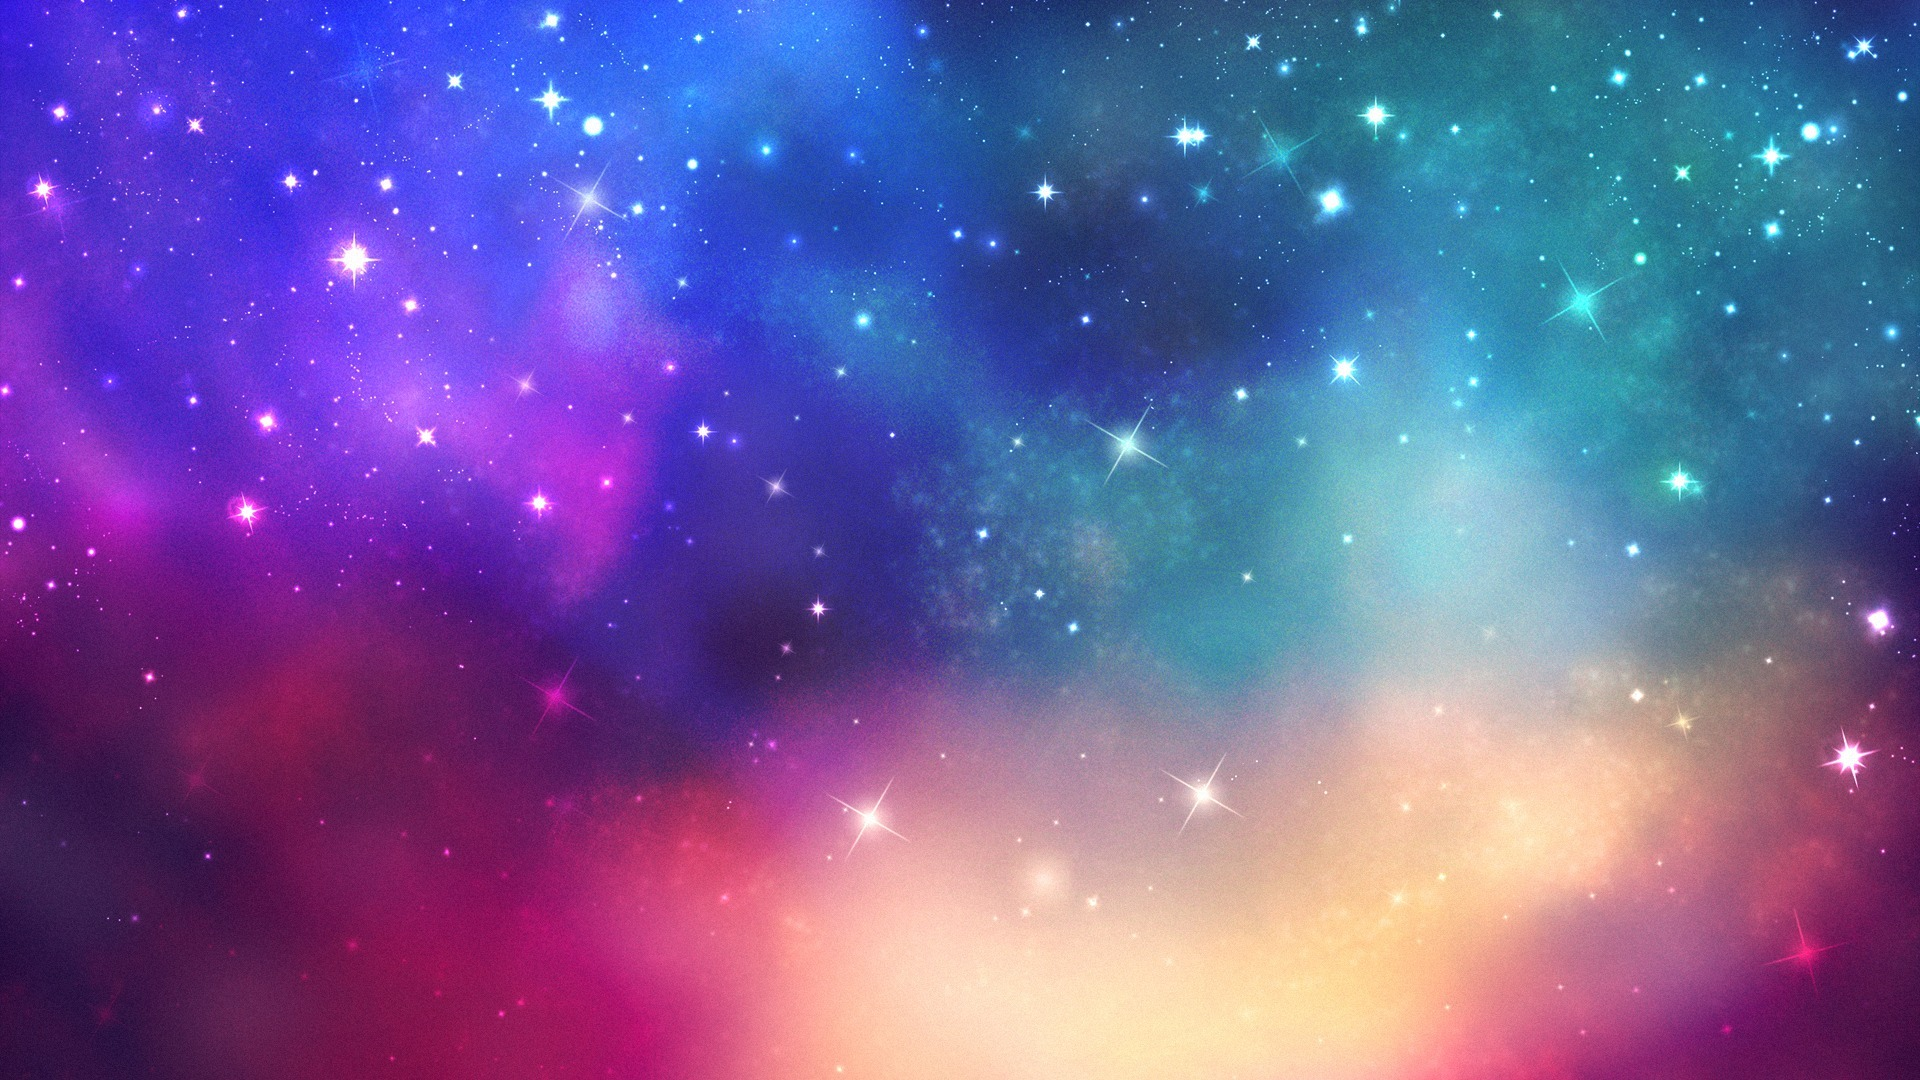 Space Stars wallpaper - 1245307